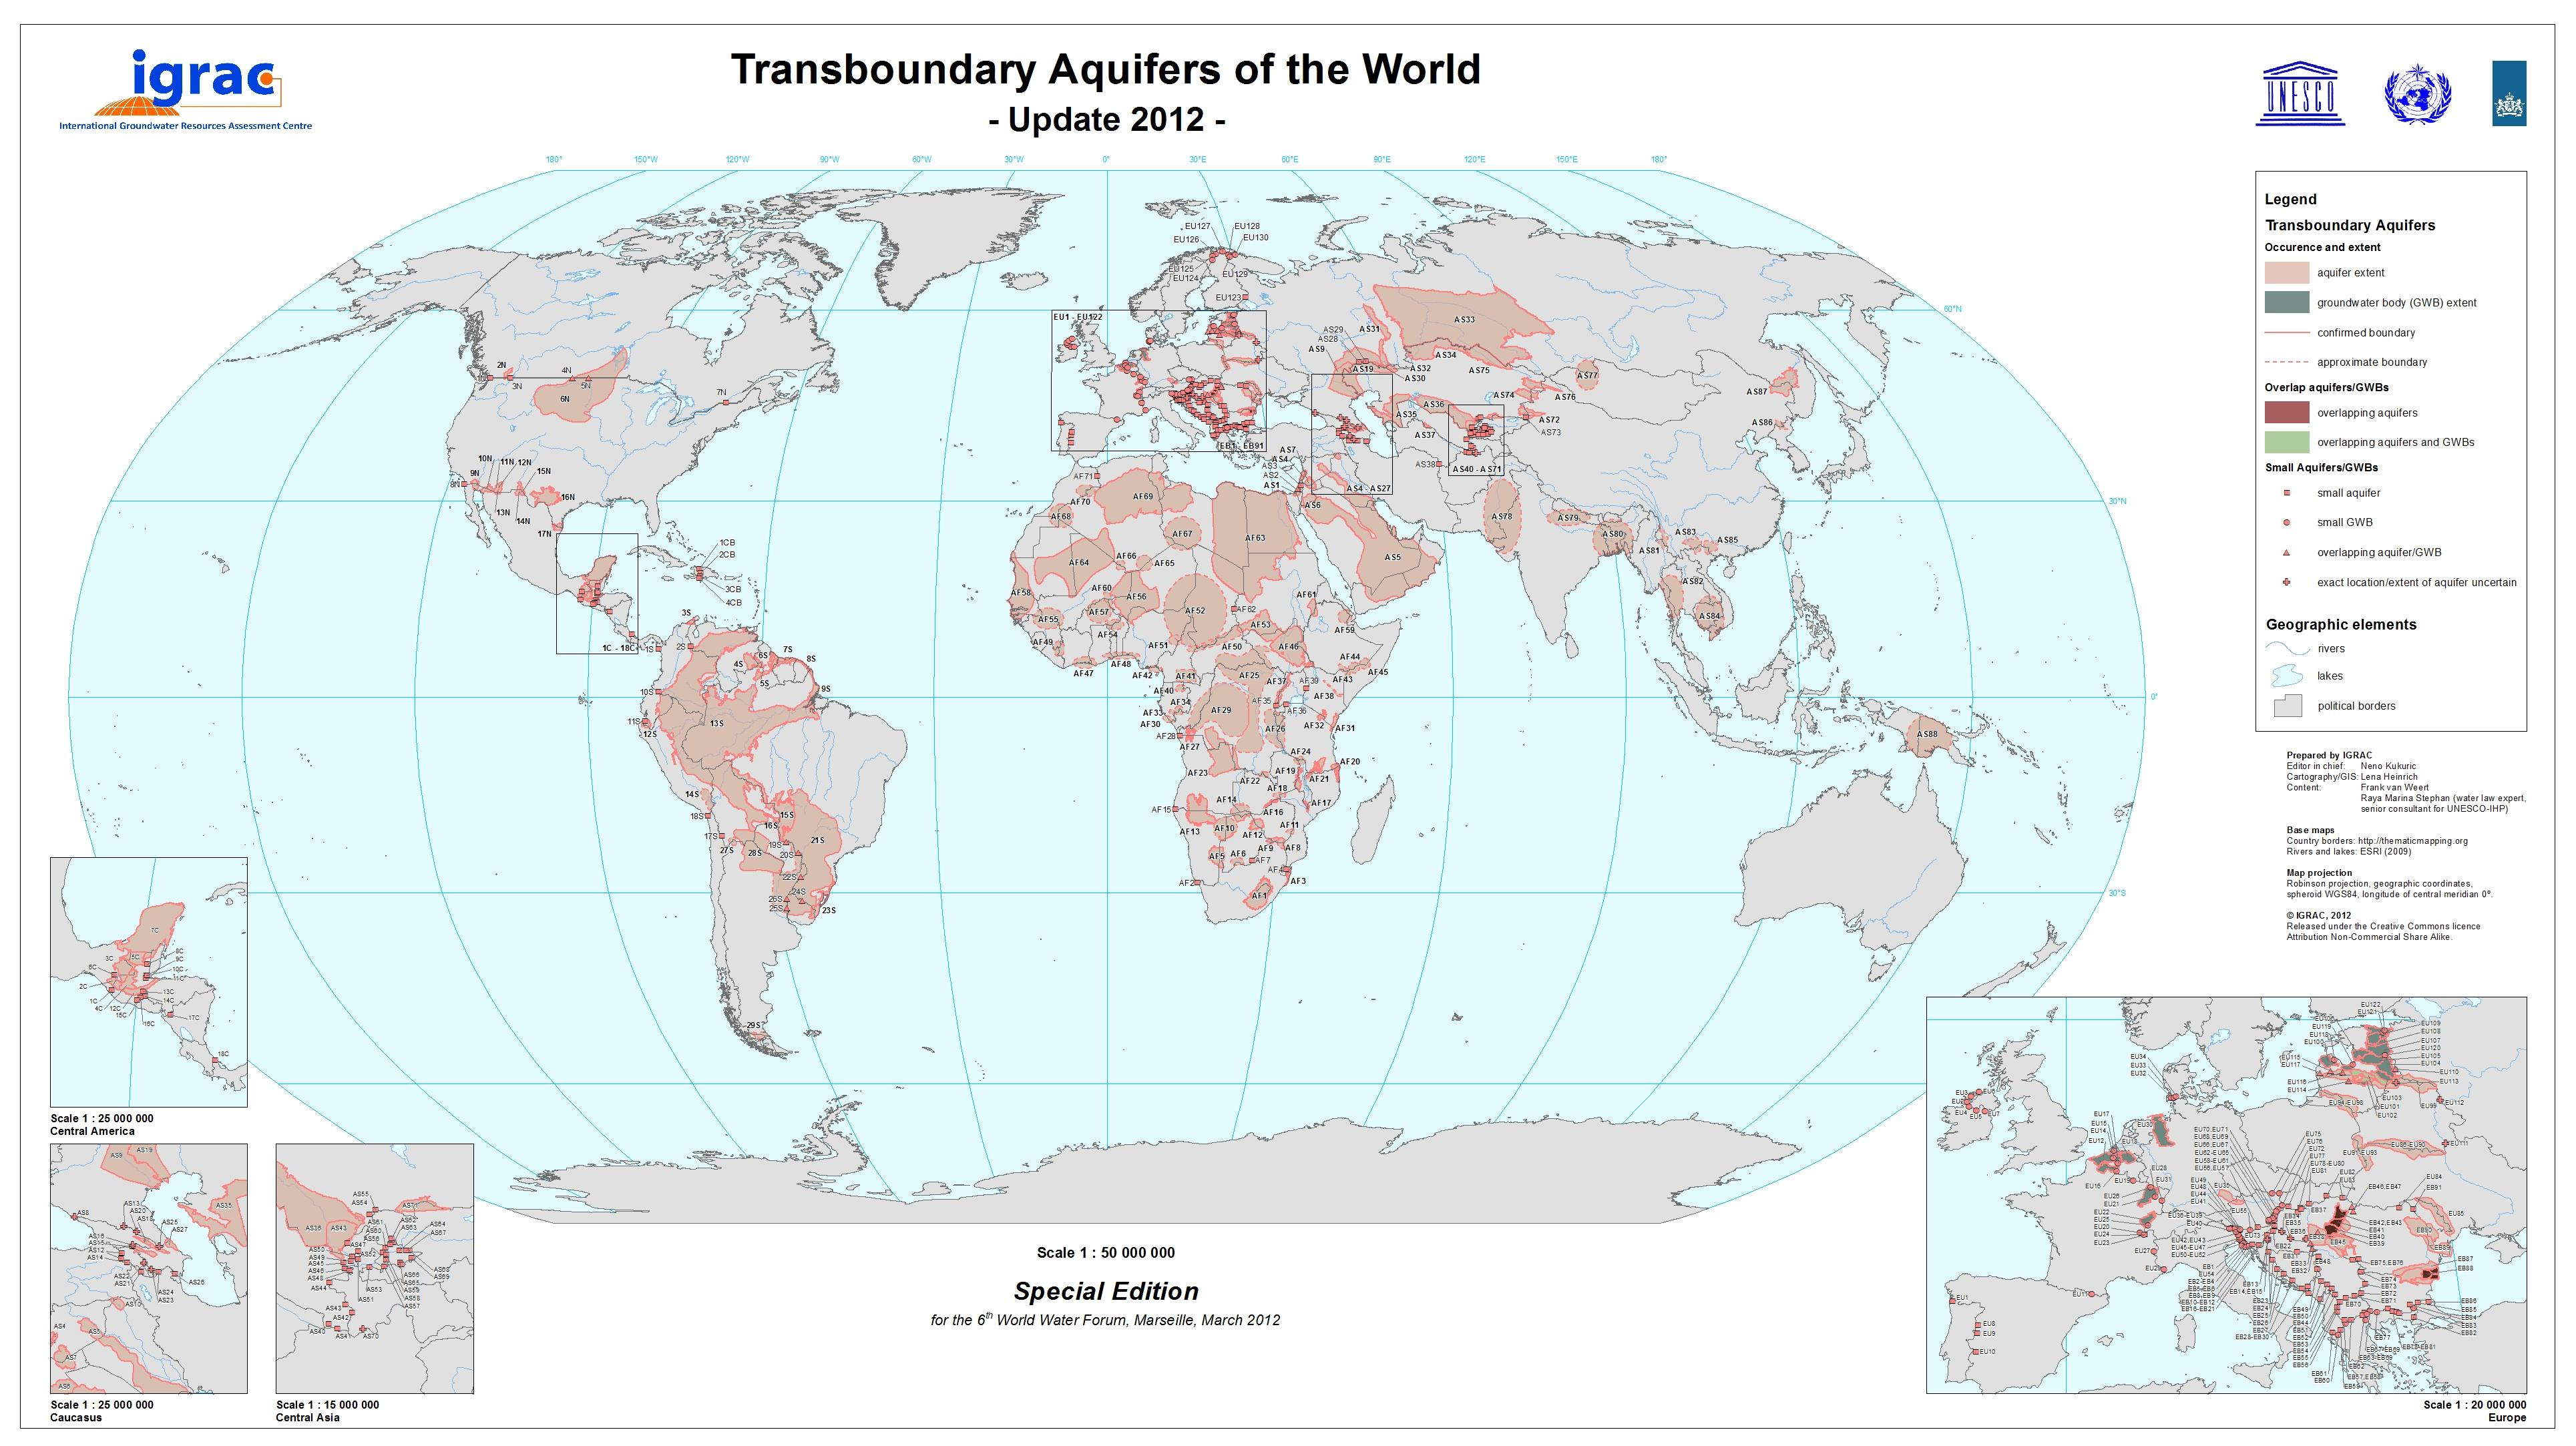 Transboundary Aquifers of the World Map 2012